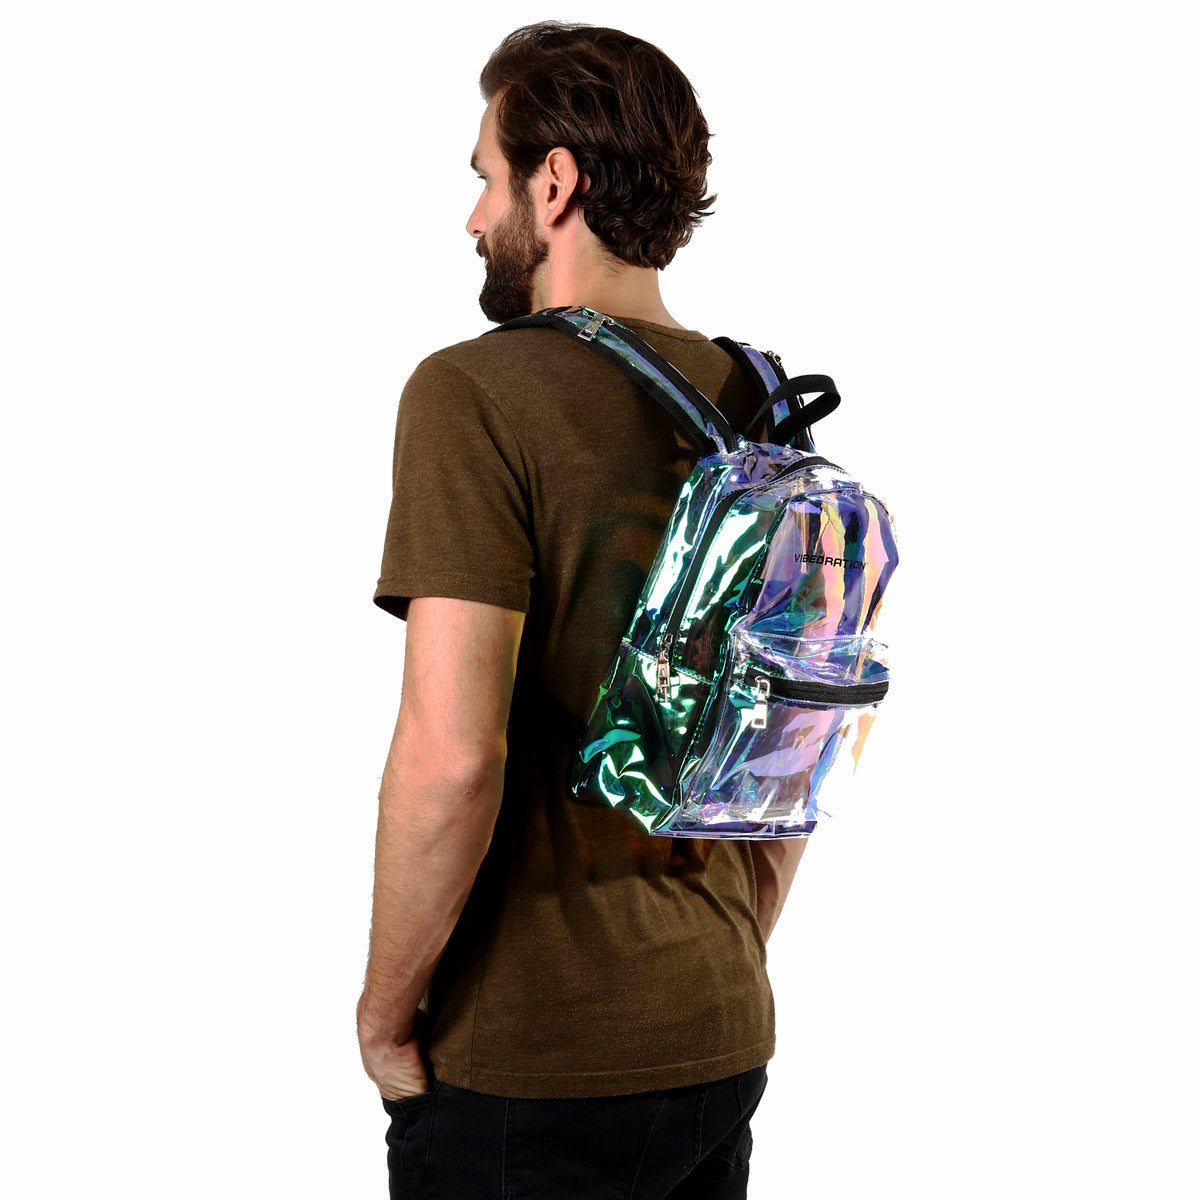 Male wearing Iridescent rave hydration pack